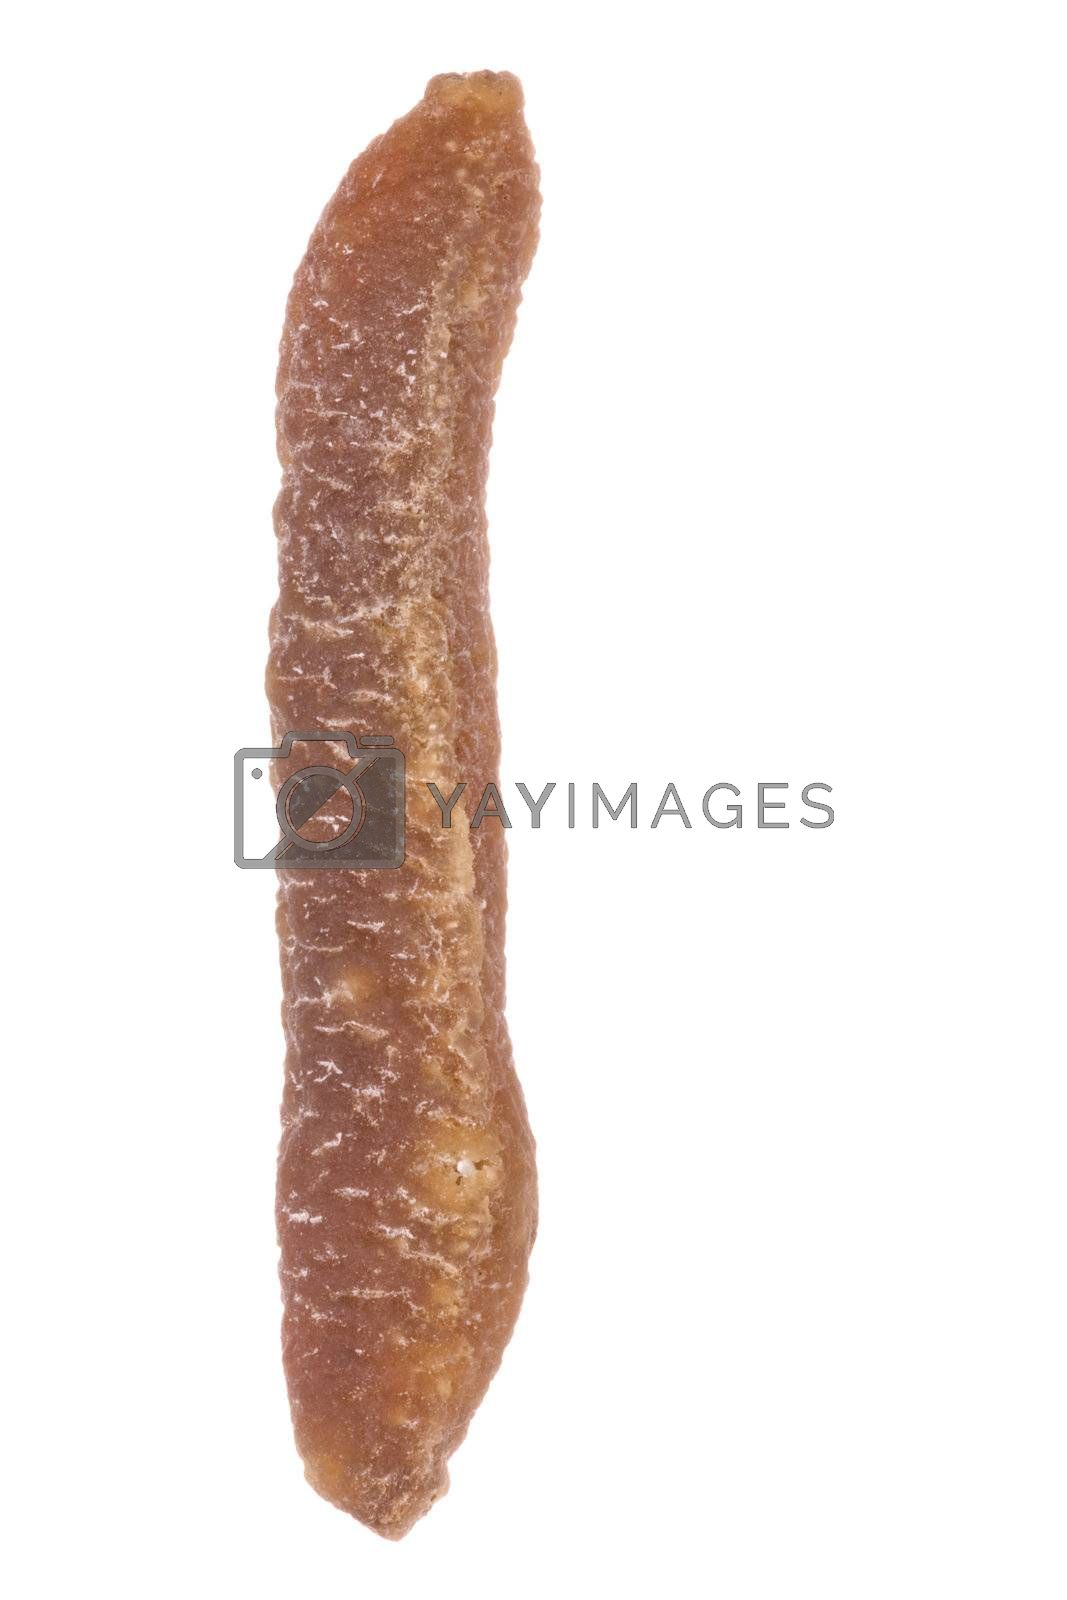 Isolated macro image of a dried sea cucumber.